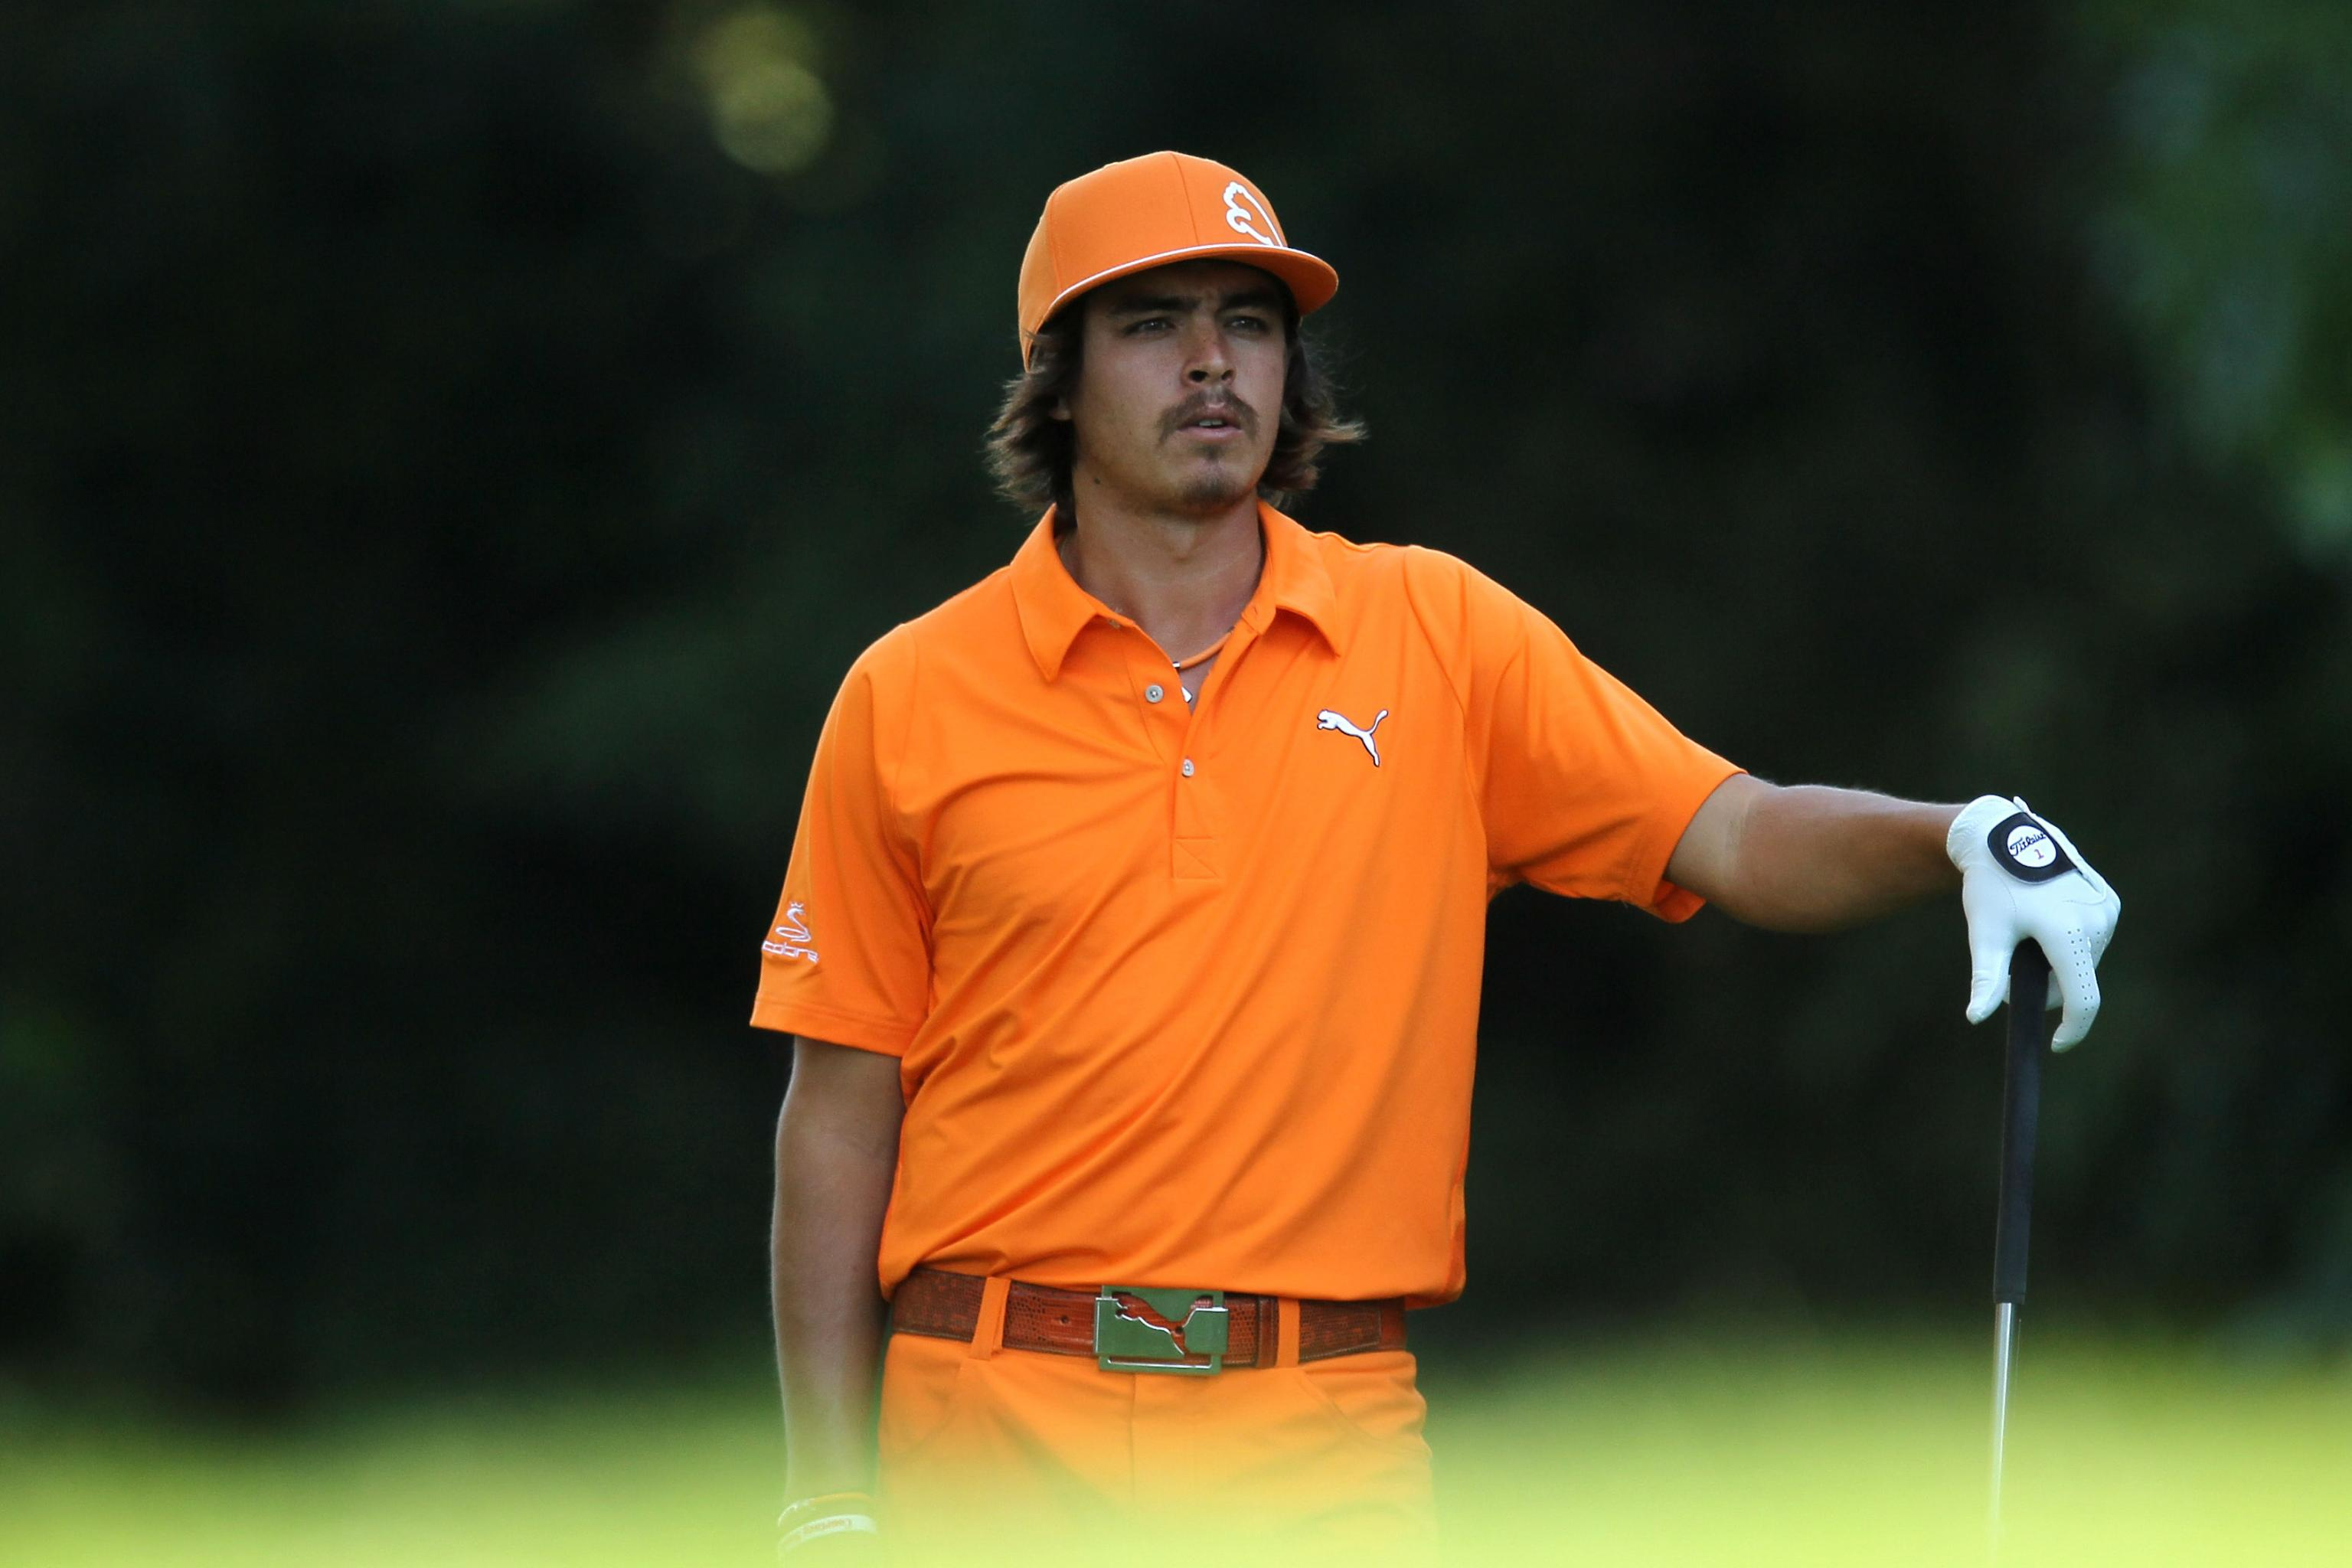 """PGA Tour: OH, OH, OH, Where's """"Golf Boy"""" Rickie Fowler? 